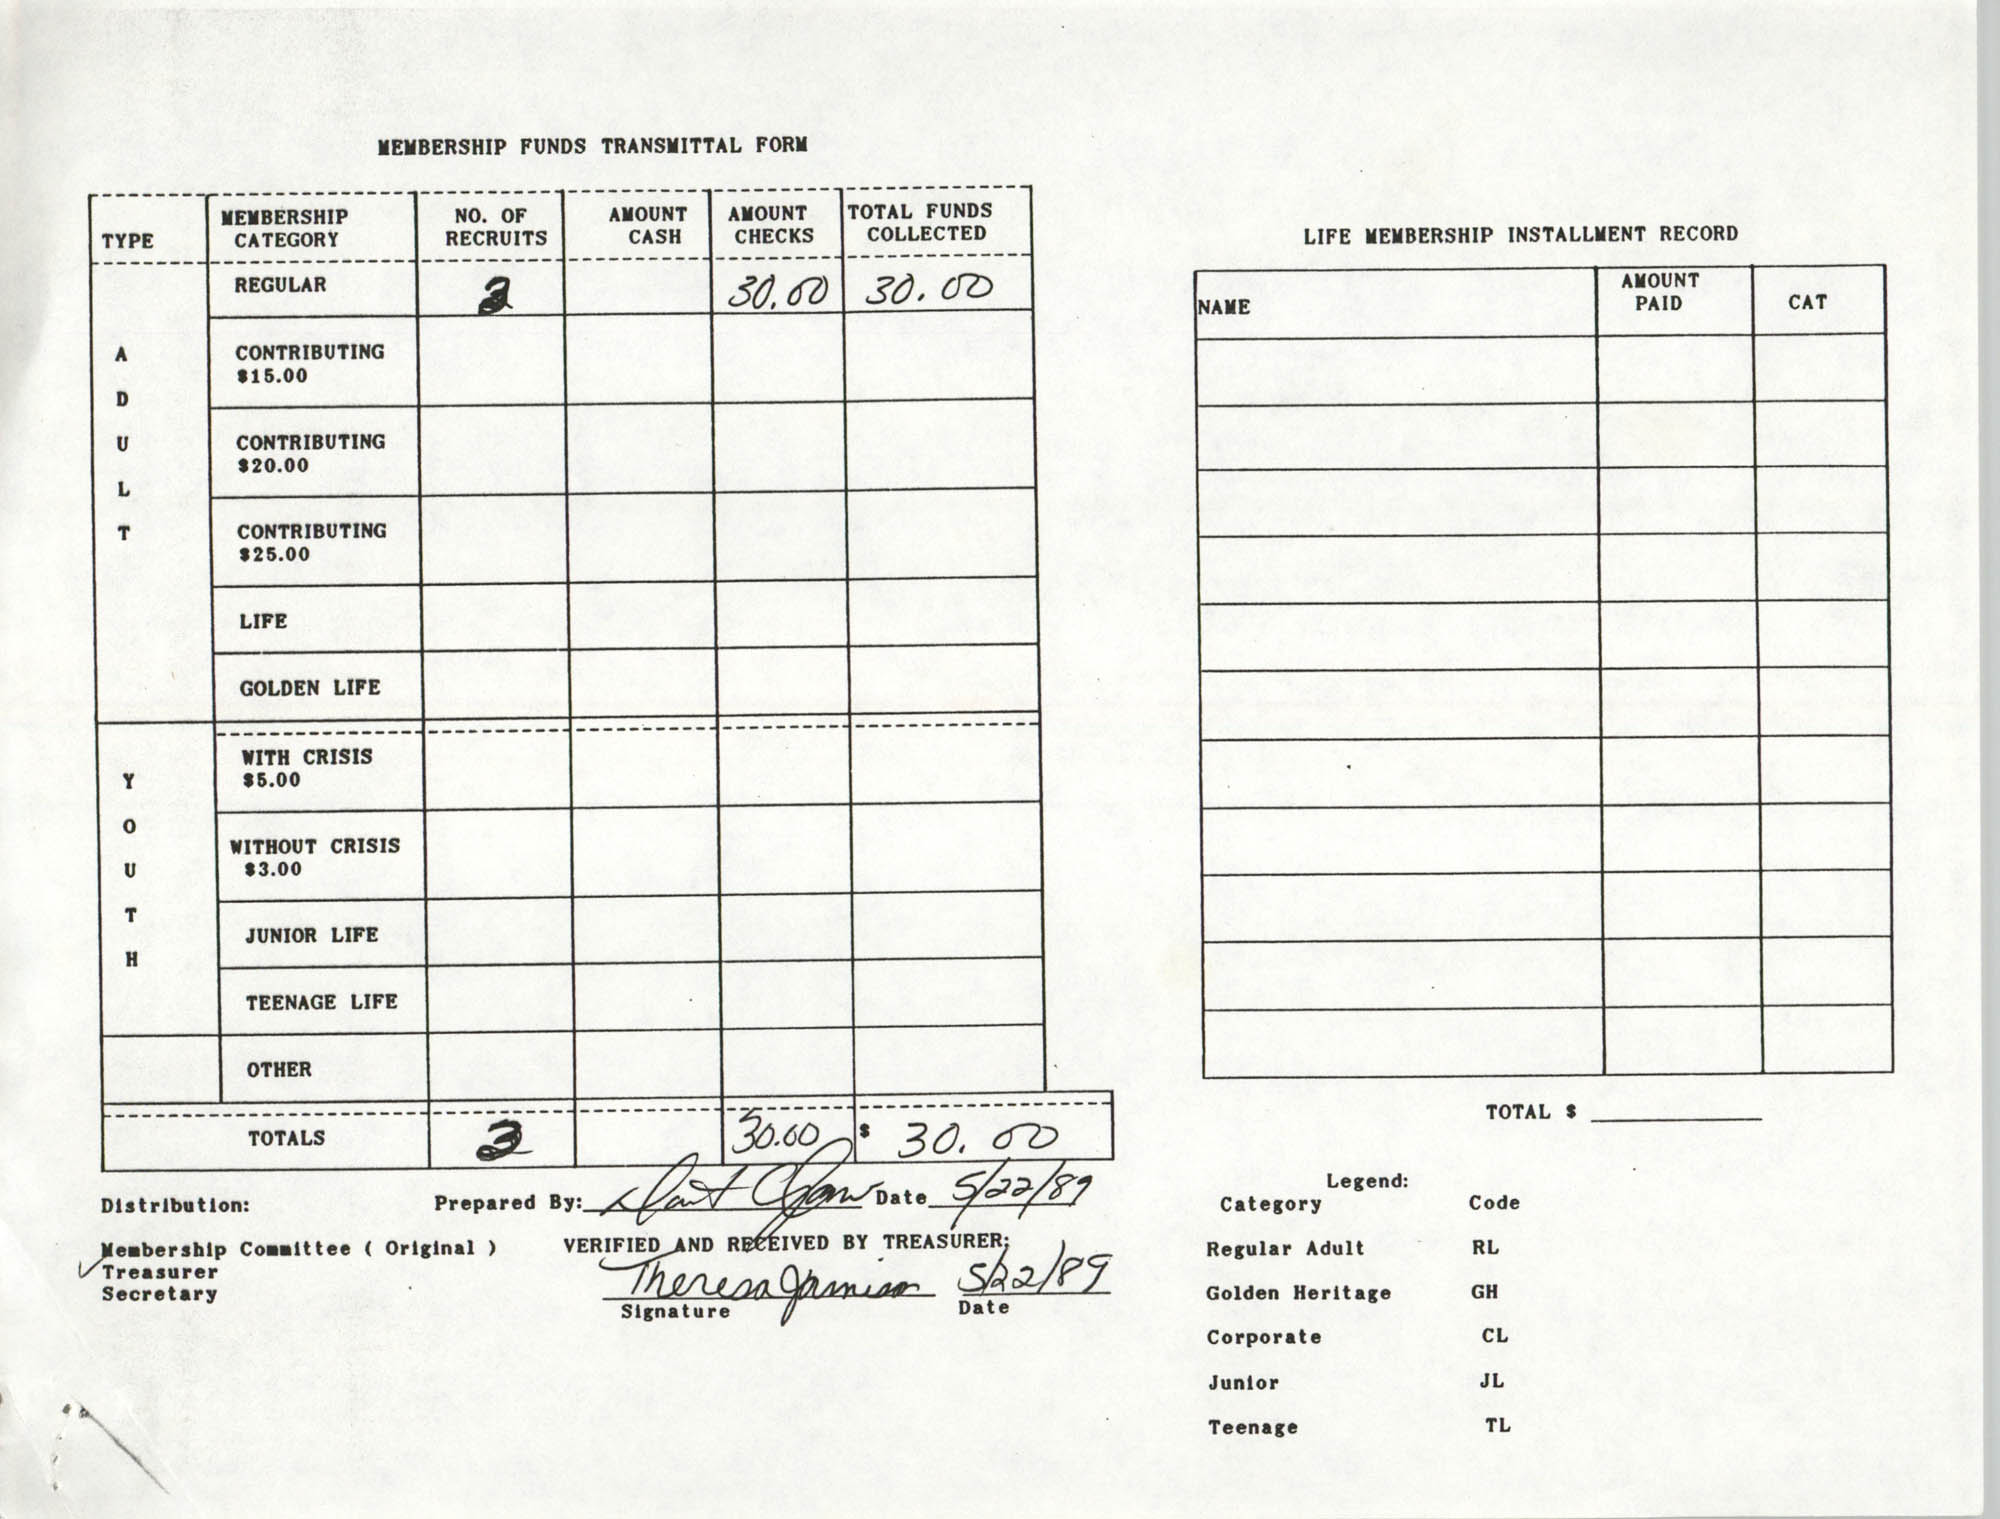 Charleston Branch of the NAACP Funds Transmittal Forms, May 1989, Page 4